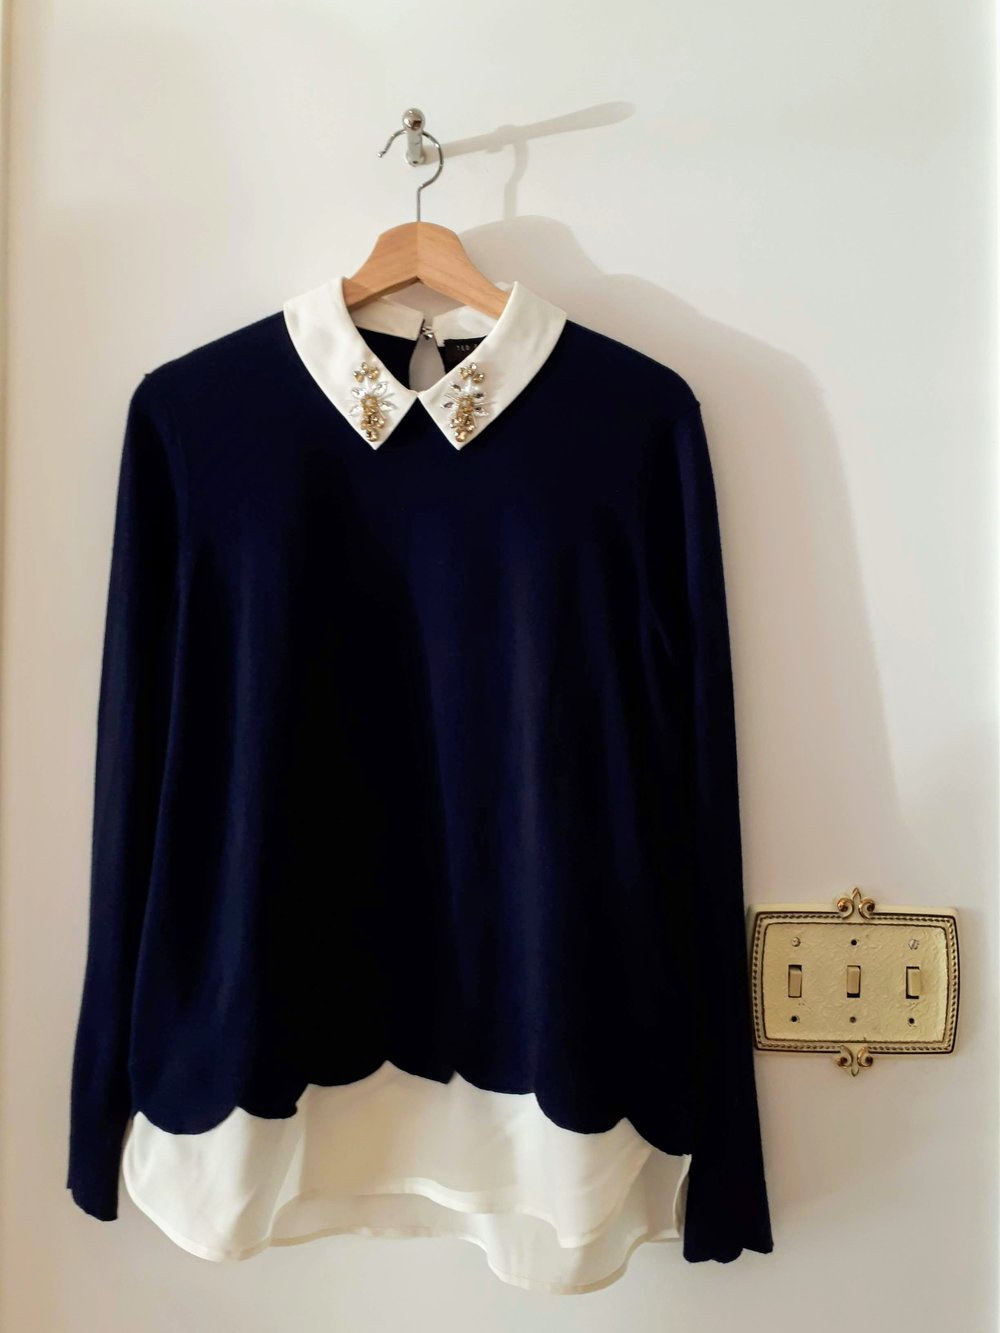 Ted Baker top; Size M, $85